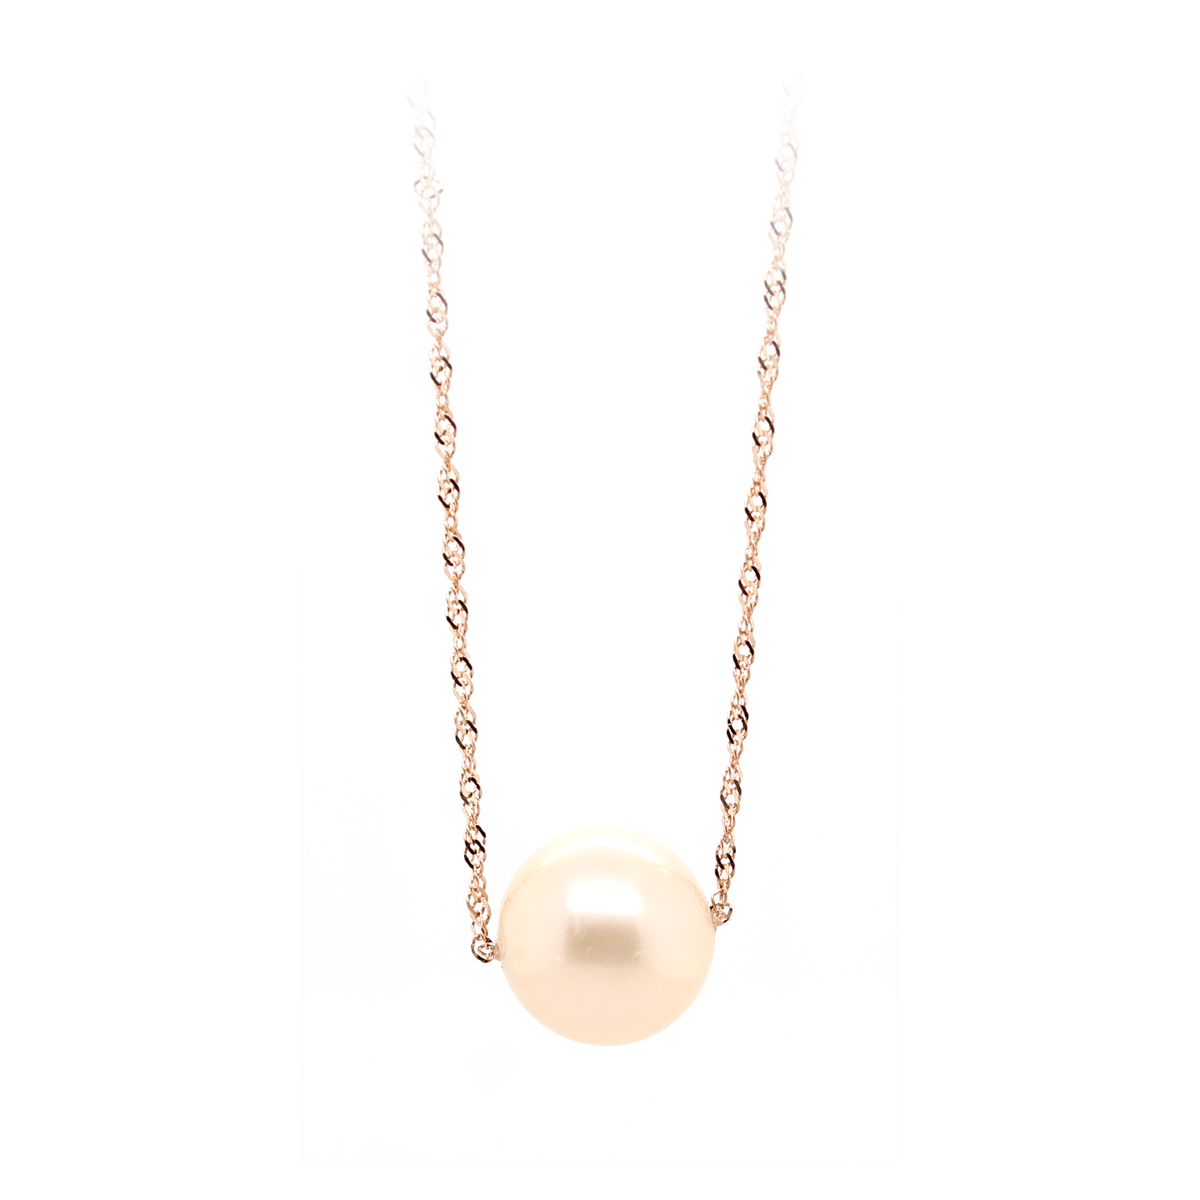 14 Karat Rose Gold Twisted Serpentine Chain with One White Pearl